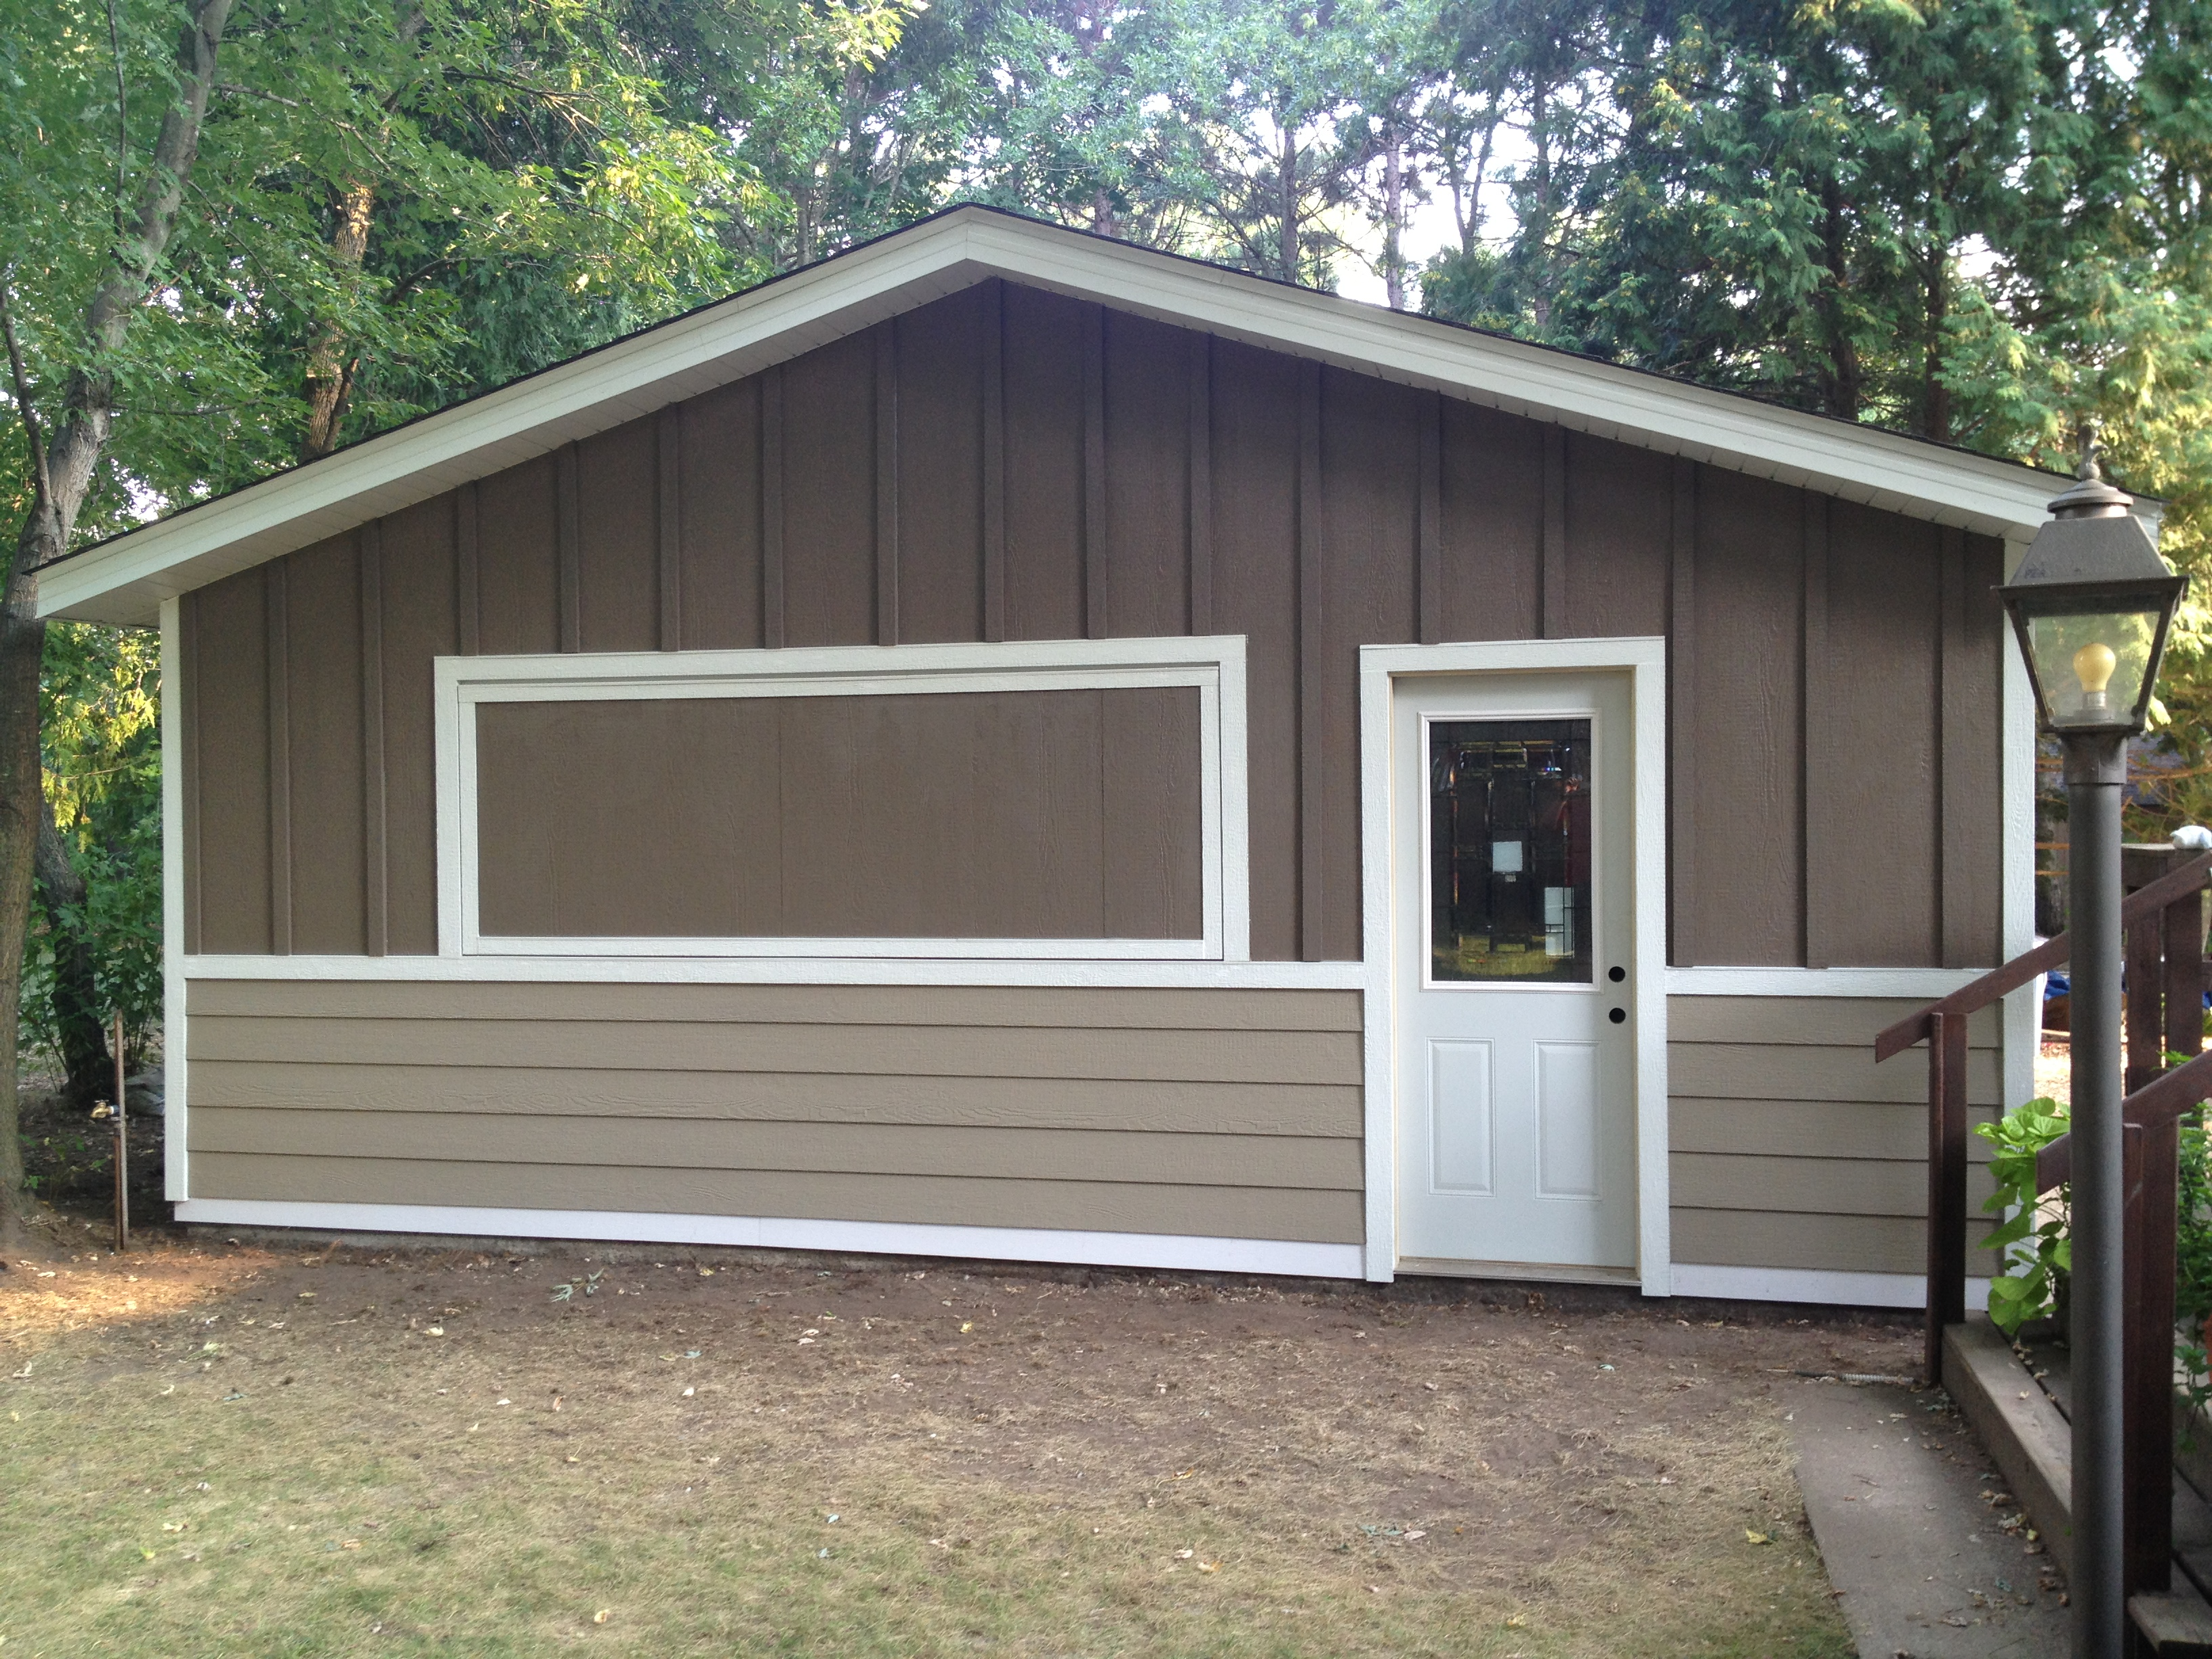 Tacheny exteriors in saint paul mn 55117 for Lp smart siding reviews